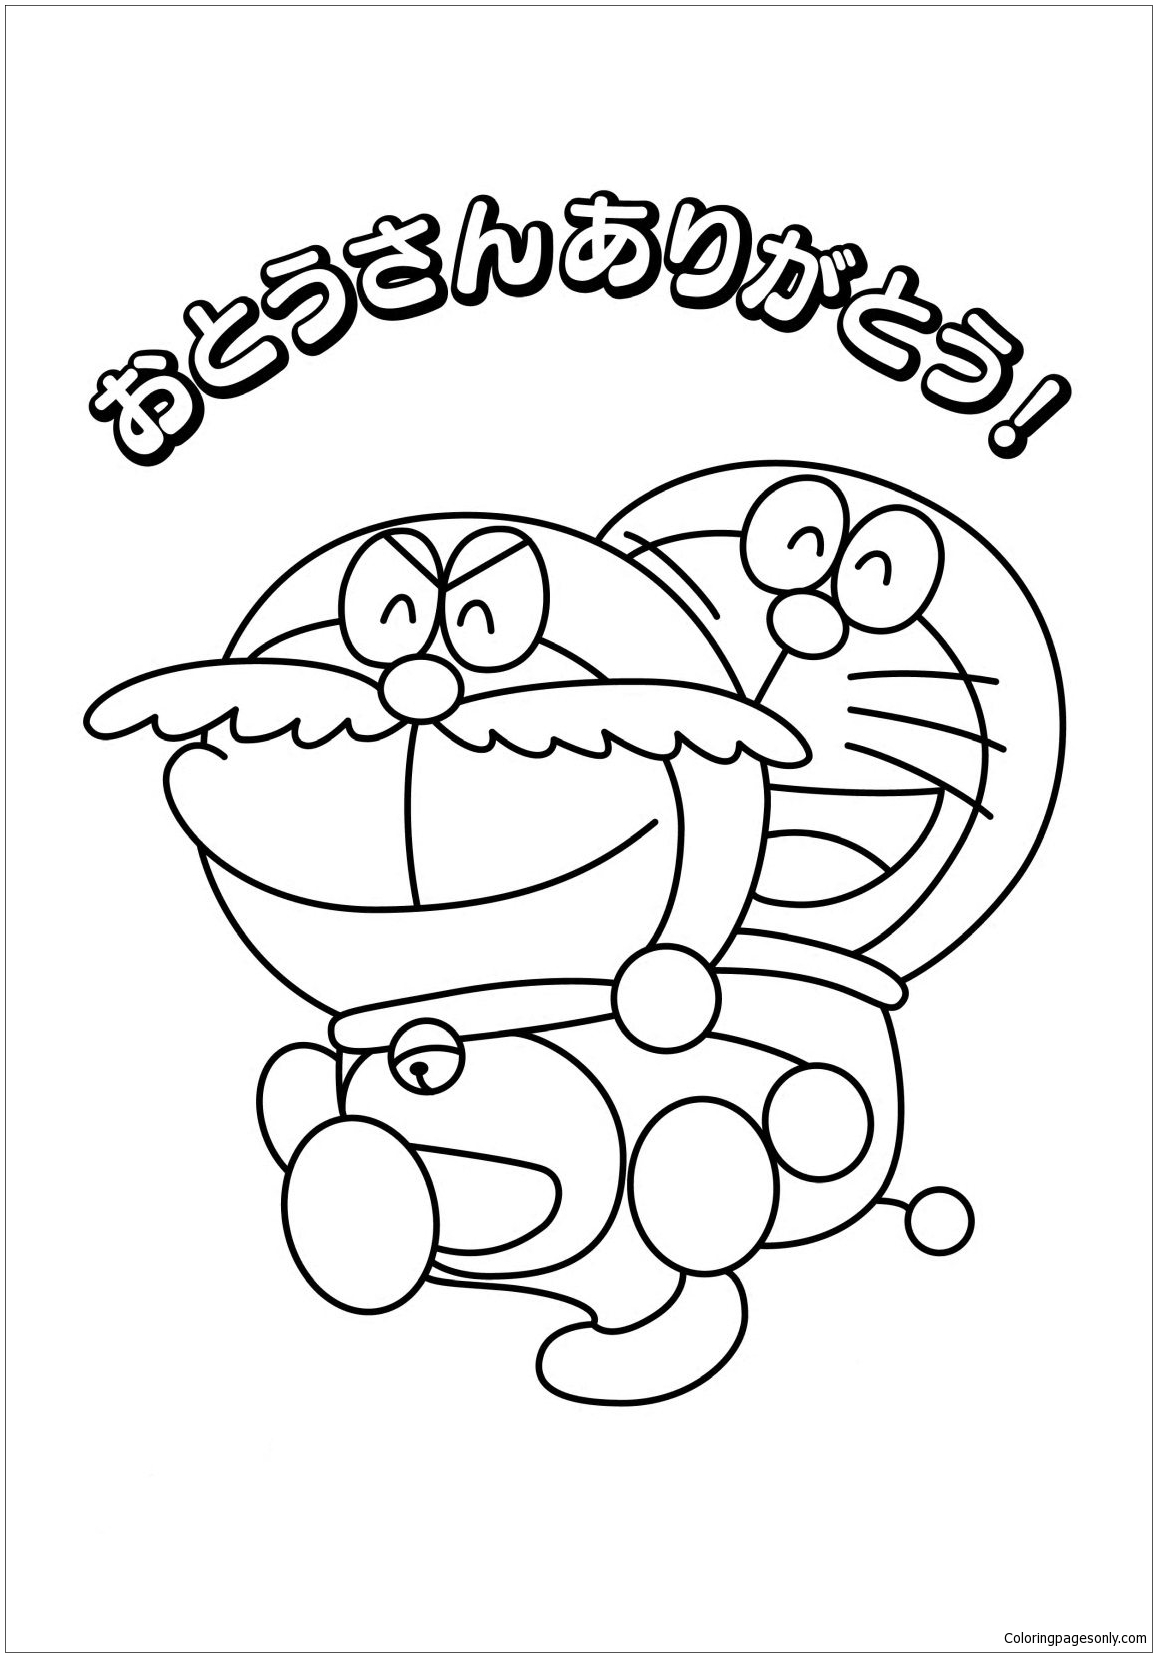 Doraemon With Mustache Coloring Page